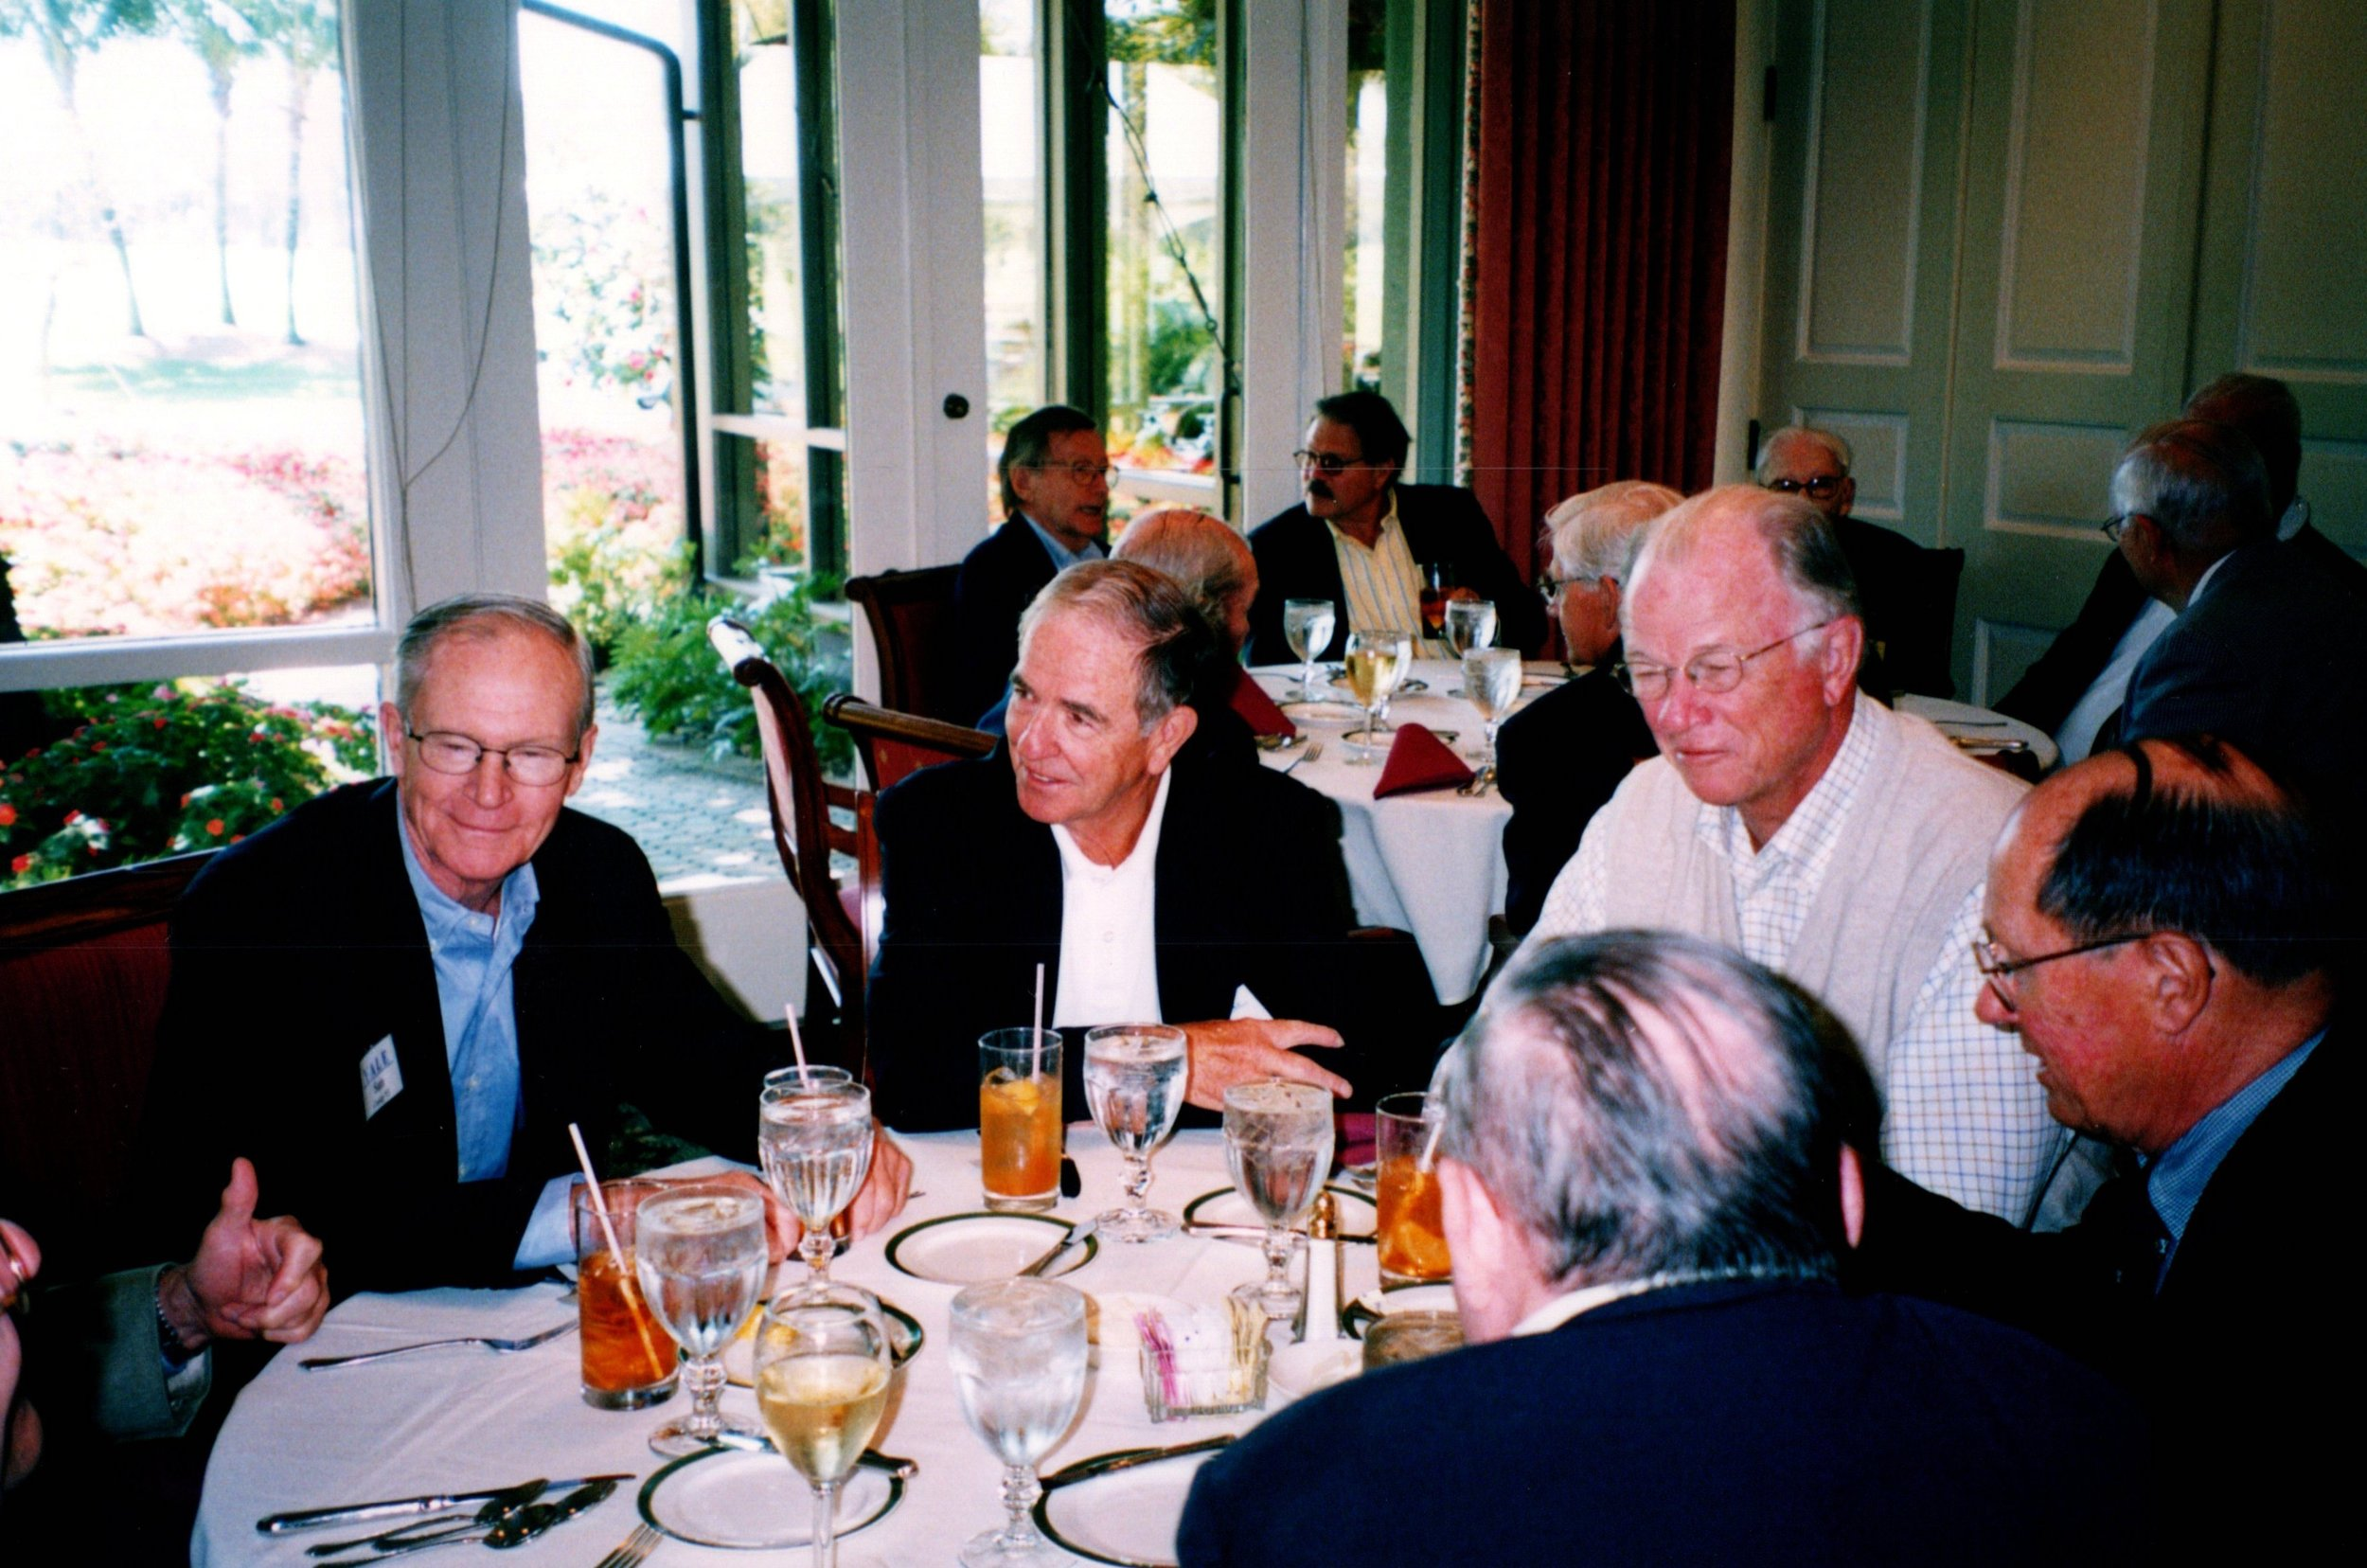 3_11_2004 - COACH SIEDLECKI LUNCHEON - ROYAL POINCIANA C.C. 5.jpg